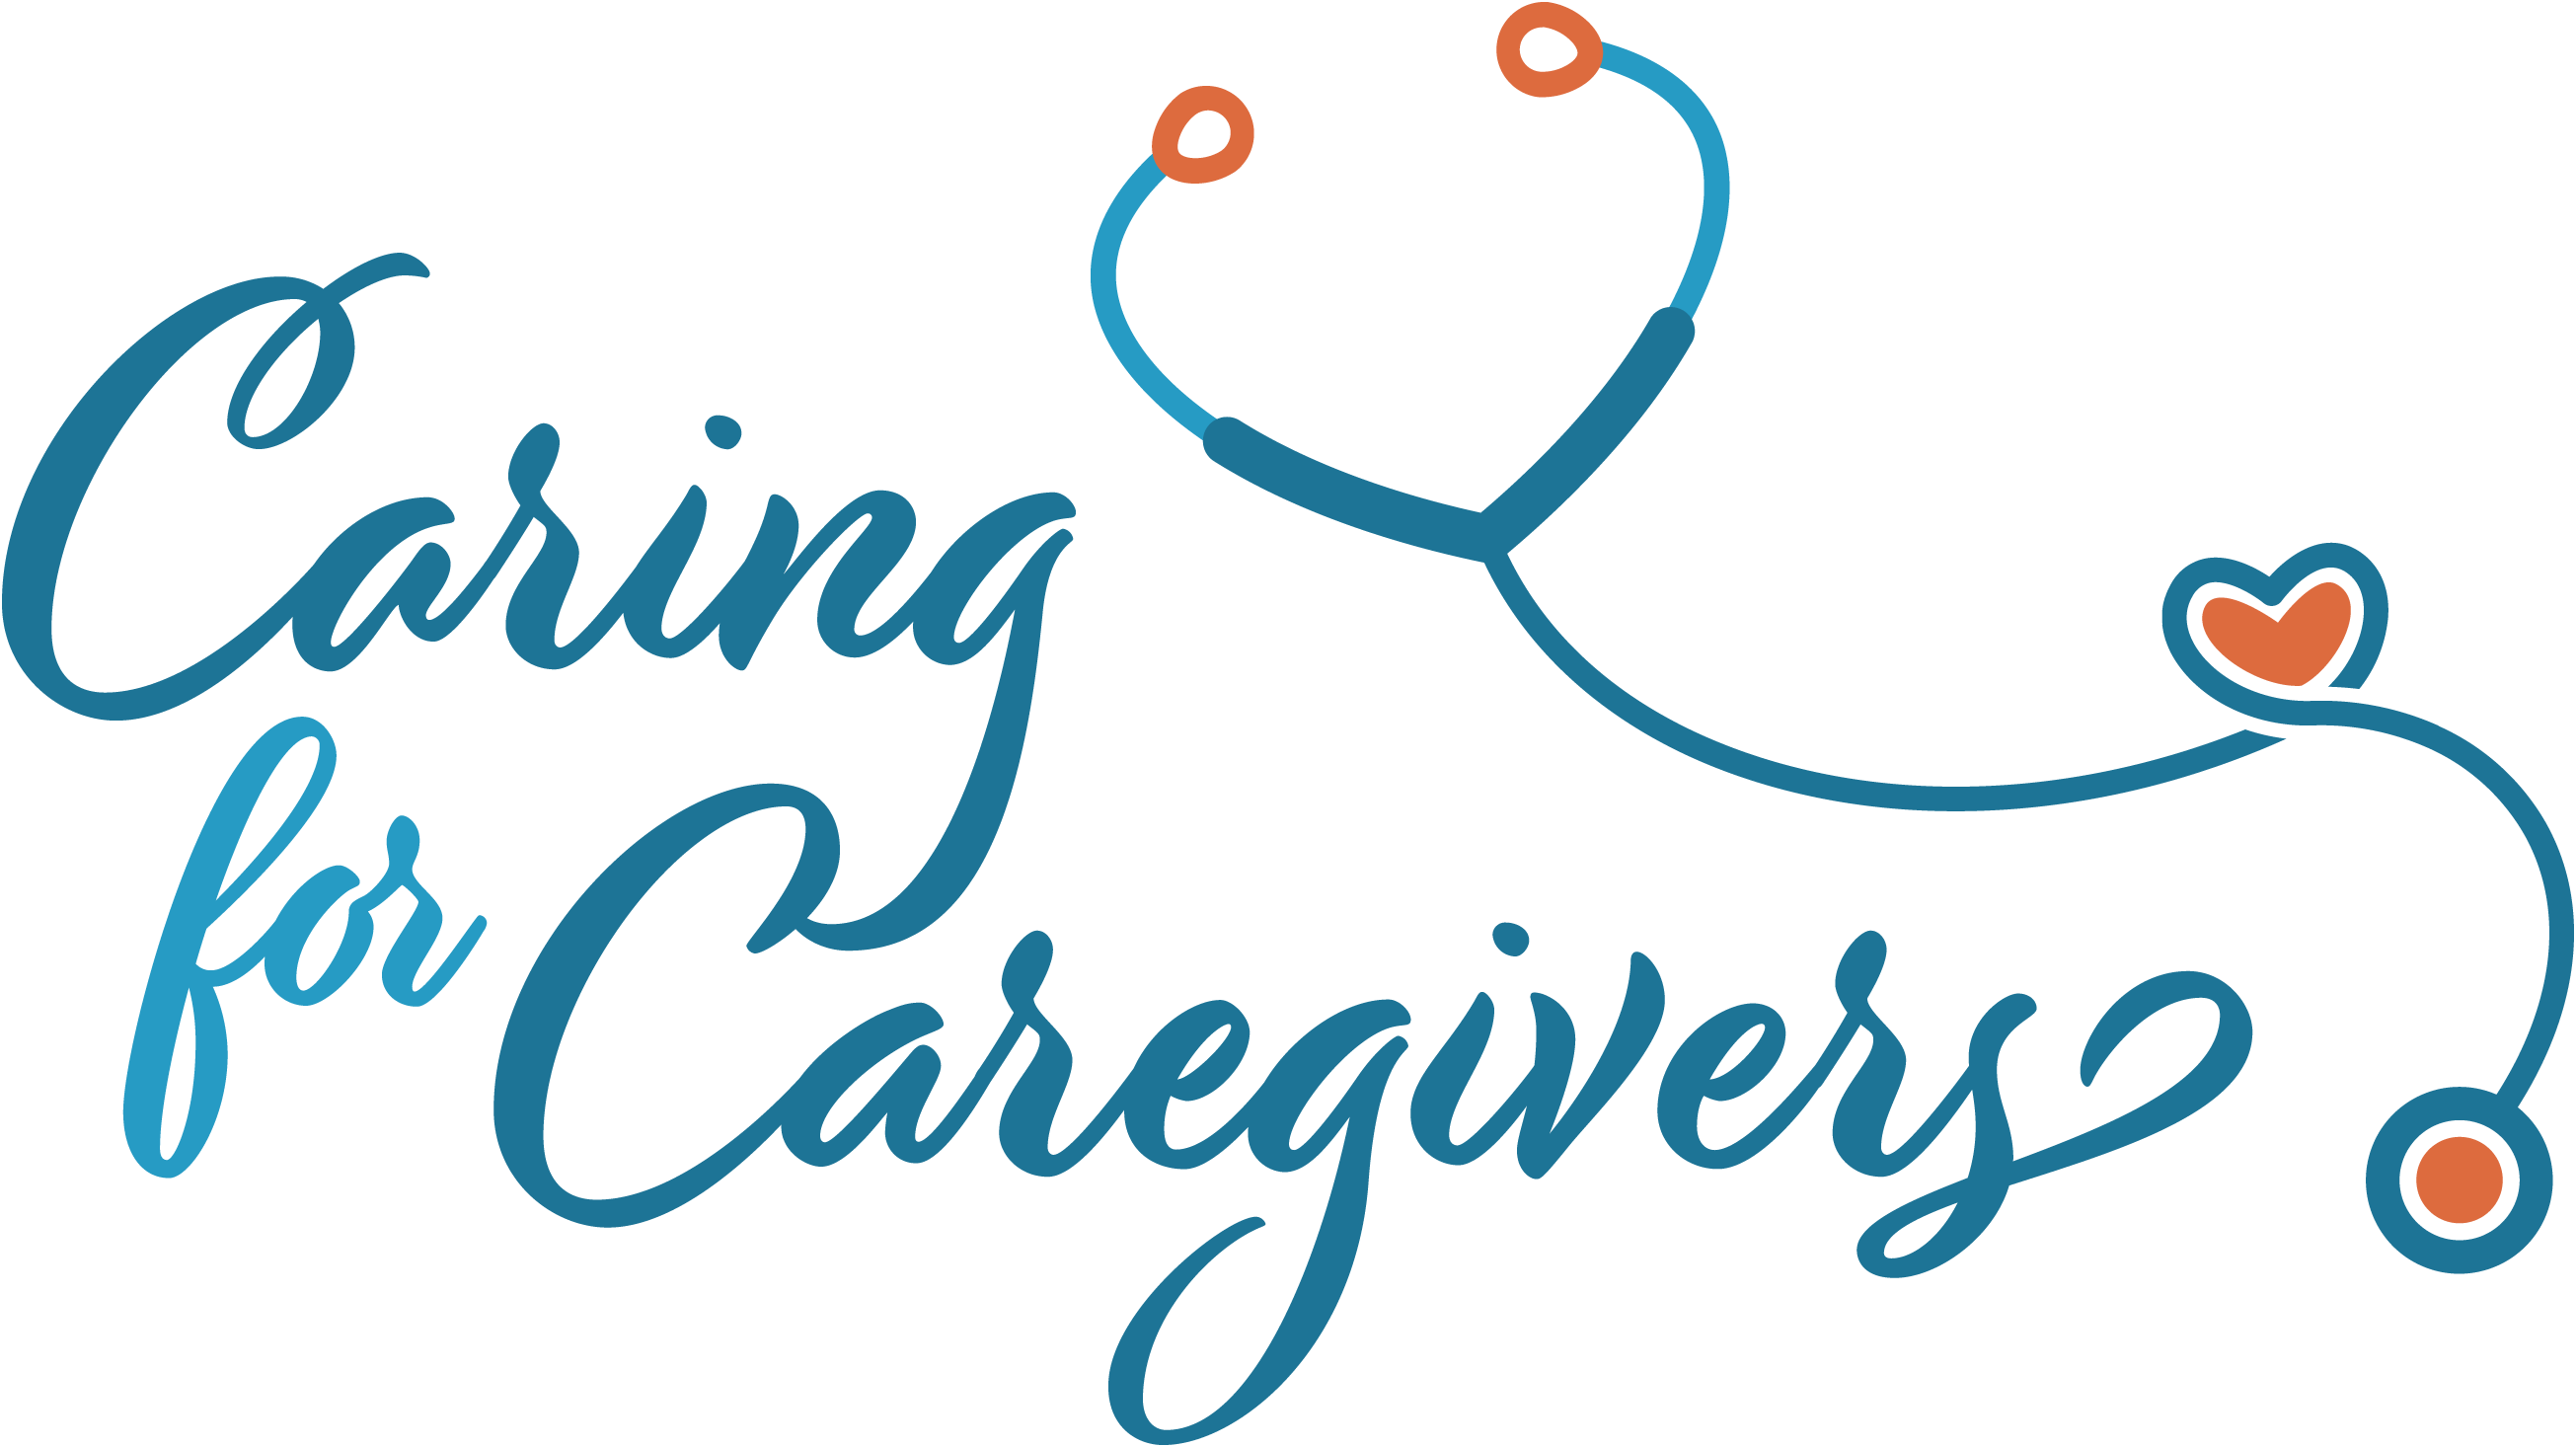 EHOB Caring for Caregivers logo blue cursive text with stethescope heart shape